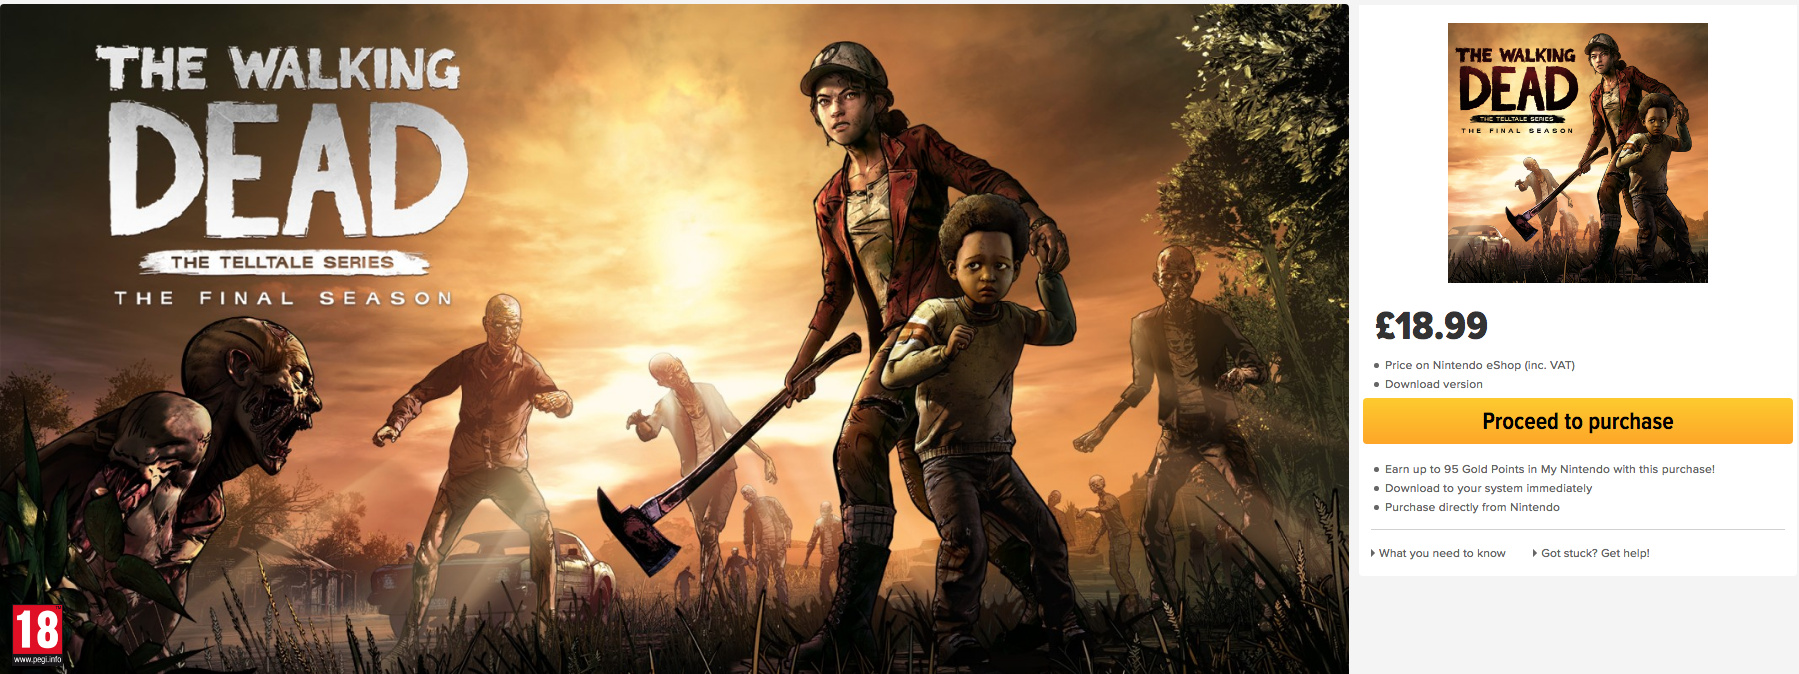 The Walking Dead: The Final Season Pulled From Some Stores